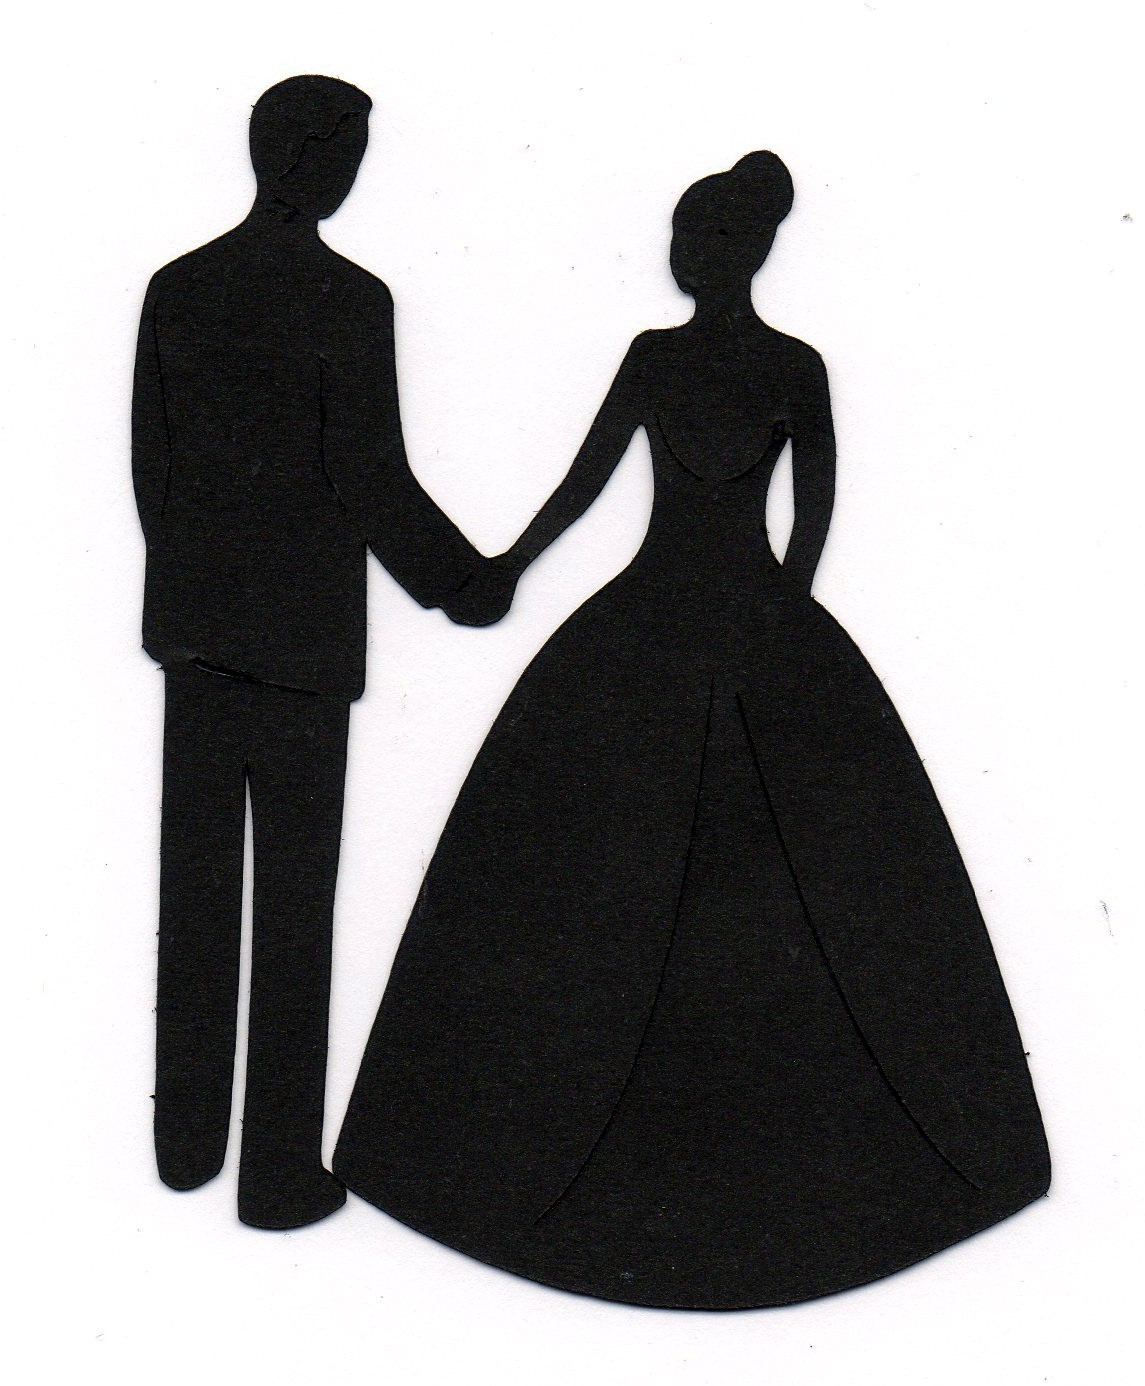 1145x1386 Bride And Groom Clipart 3 Bride And Groom Silhouette Image